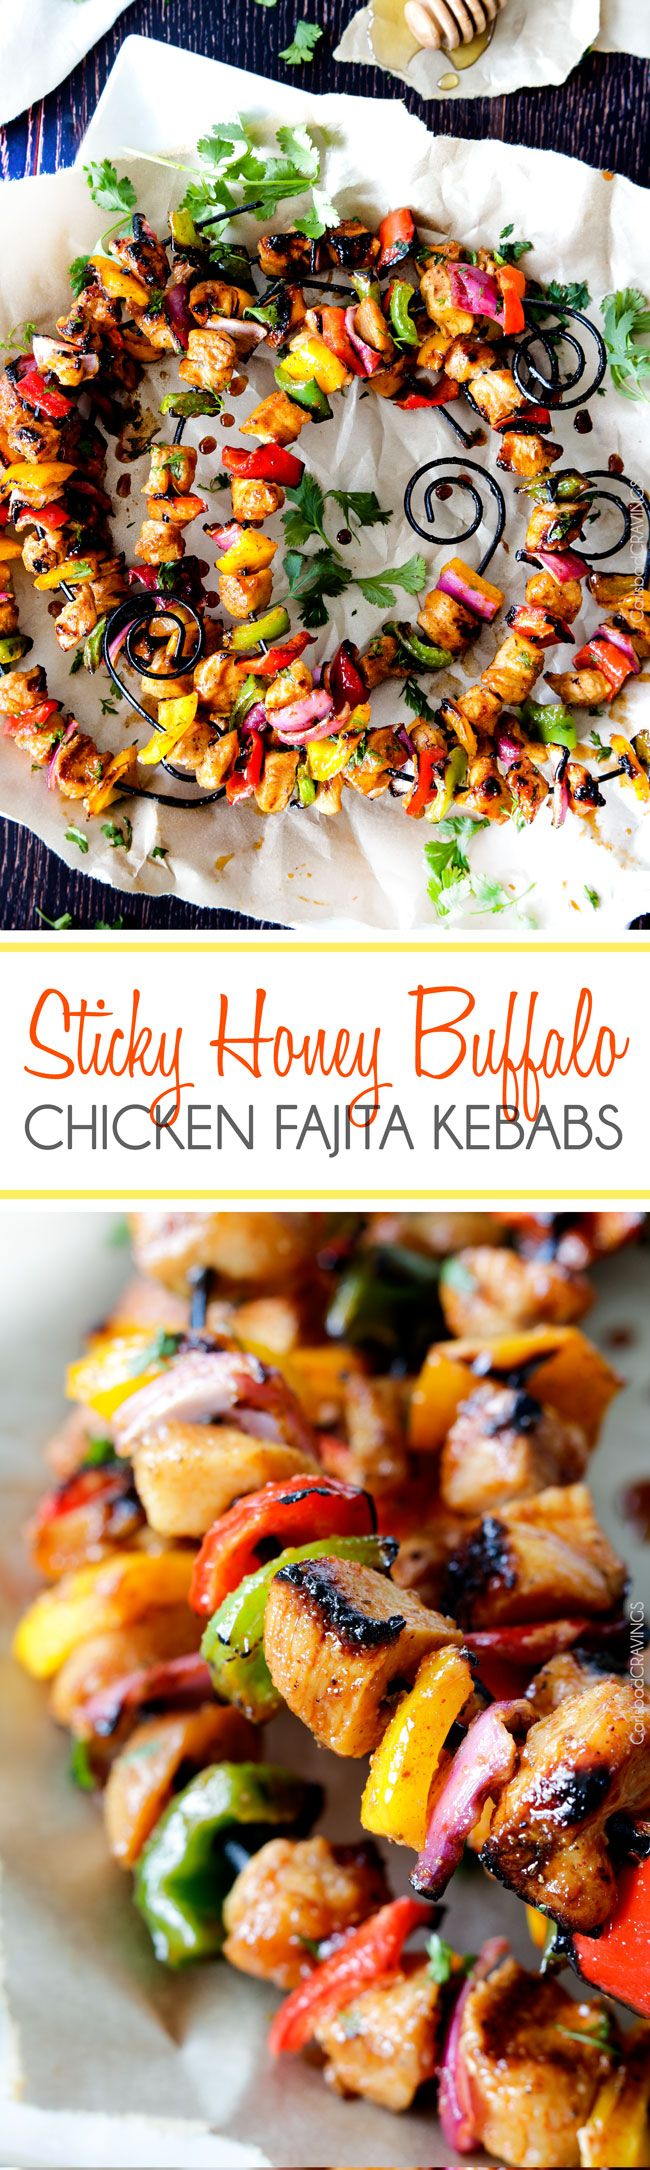 Easy Sticky Honey Buffalo Chicken Fajita Kebabs -- this flavorful meal is marinated and doused in the most tantalizing sweet heat sauce! http://www.carlsbadcravings.com/sticky-honey-buffalo-chicken-fajita-kebabs-recipe/